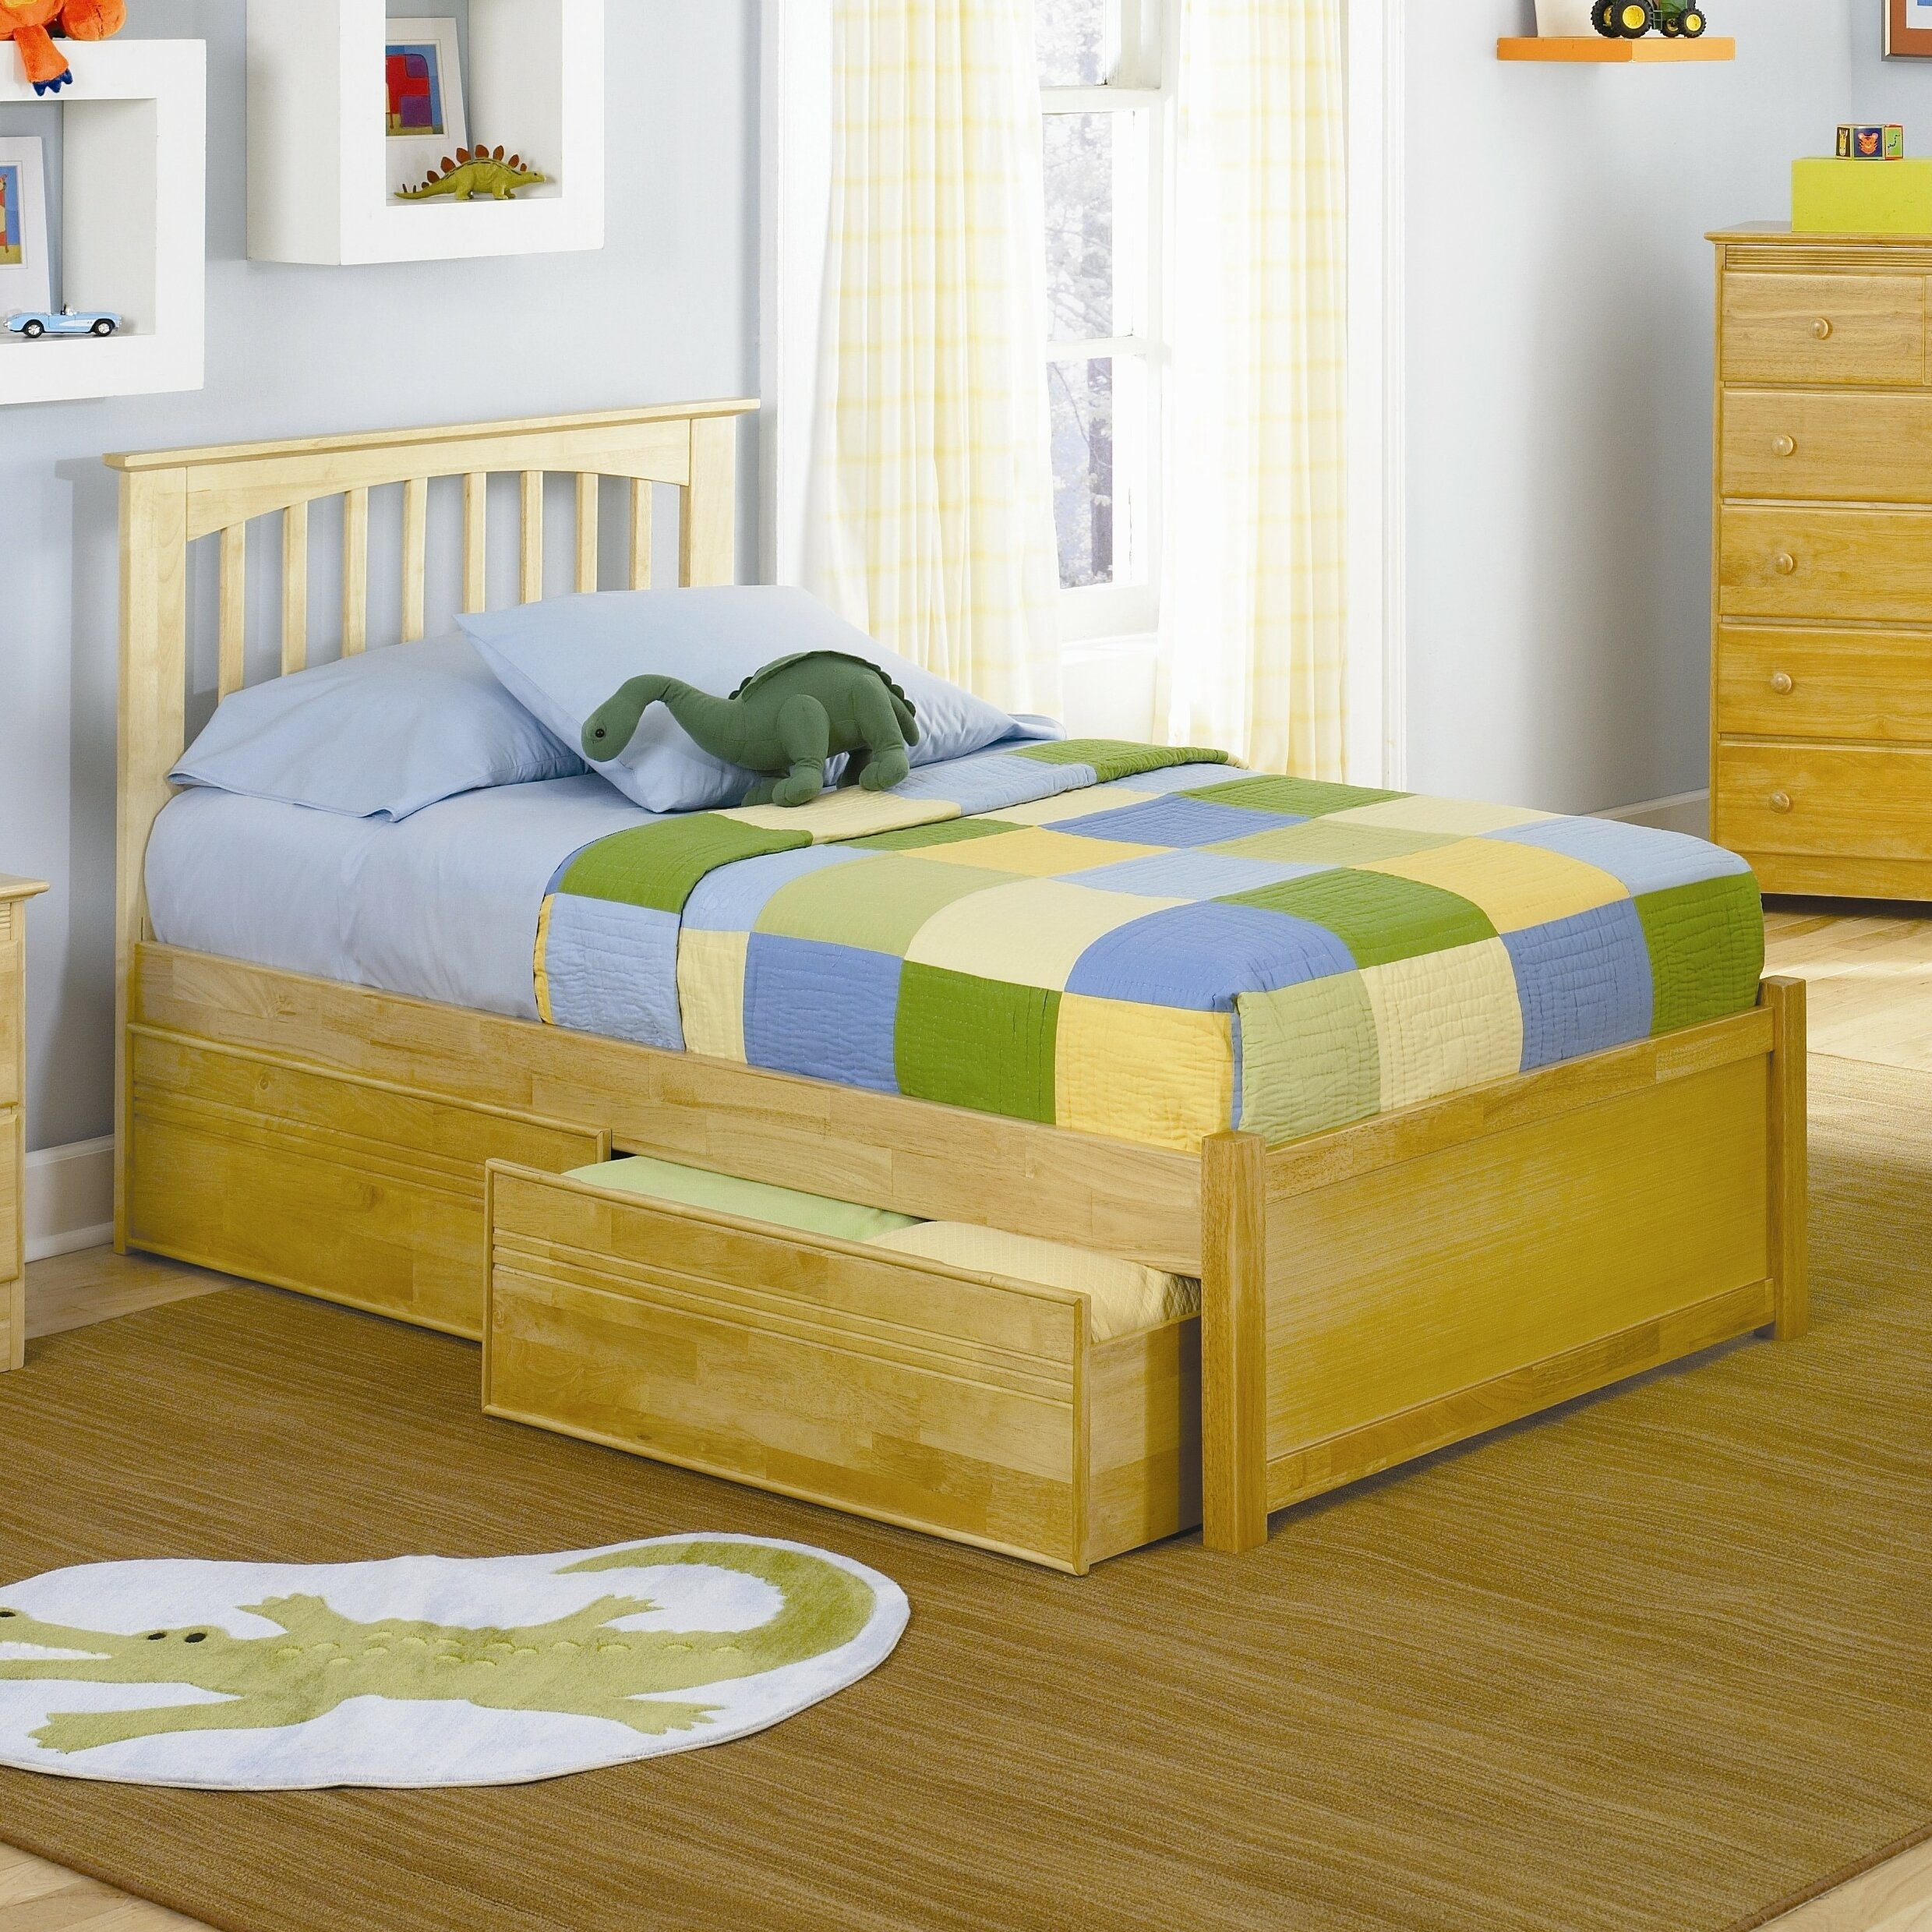 rooms to go kids raleigh switchsecuritycompanies. Black Bedroom Furniture Sets. Home Design Ideas